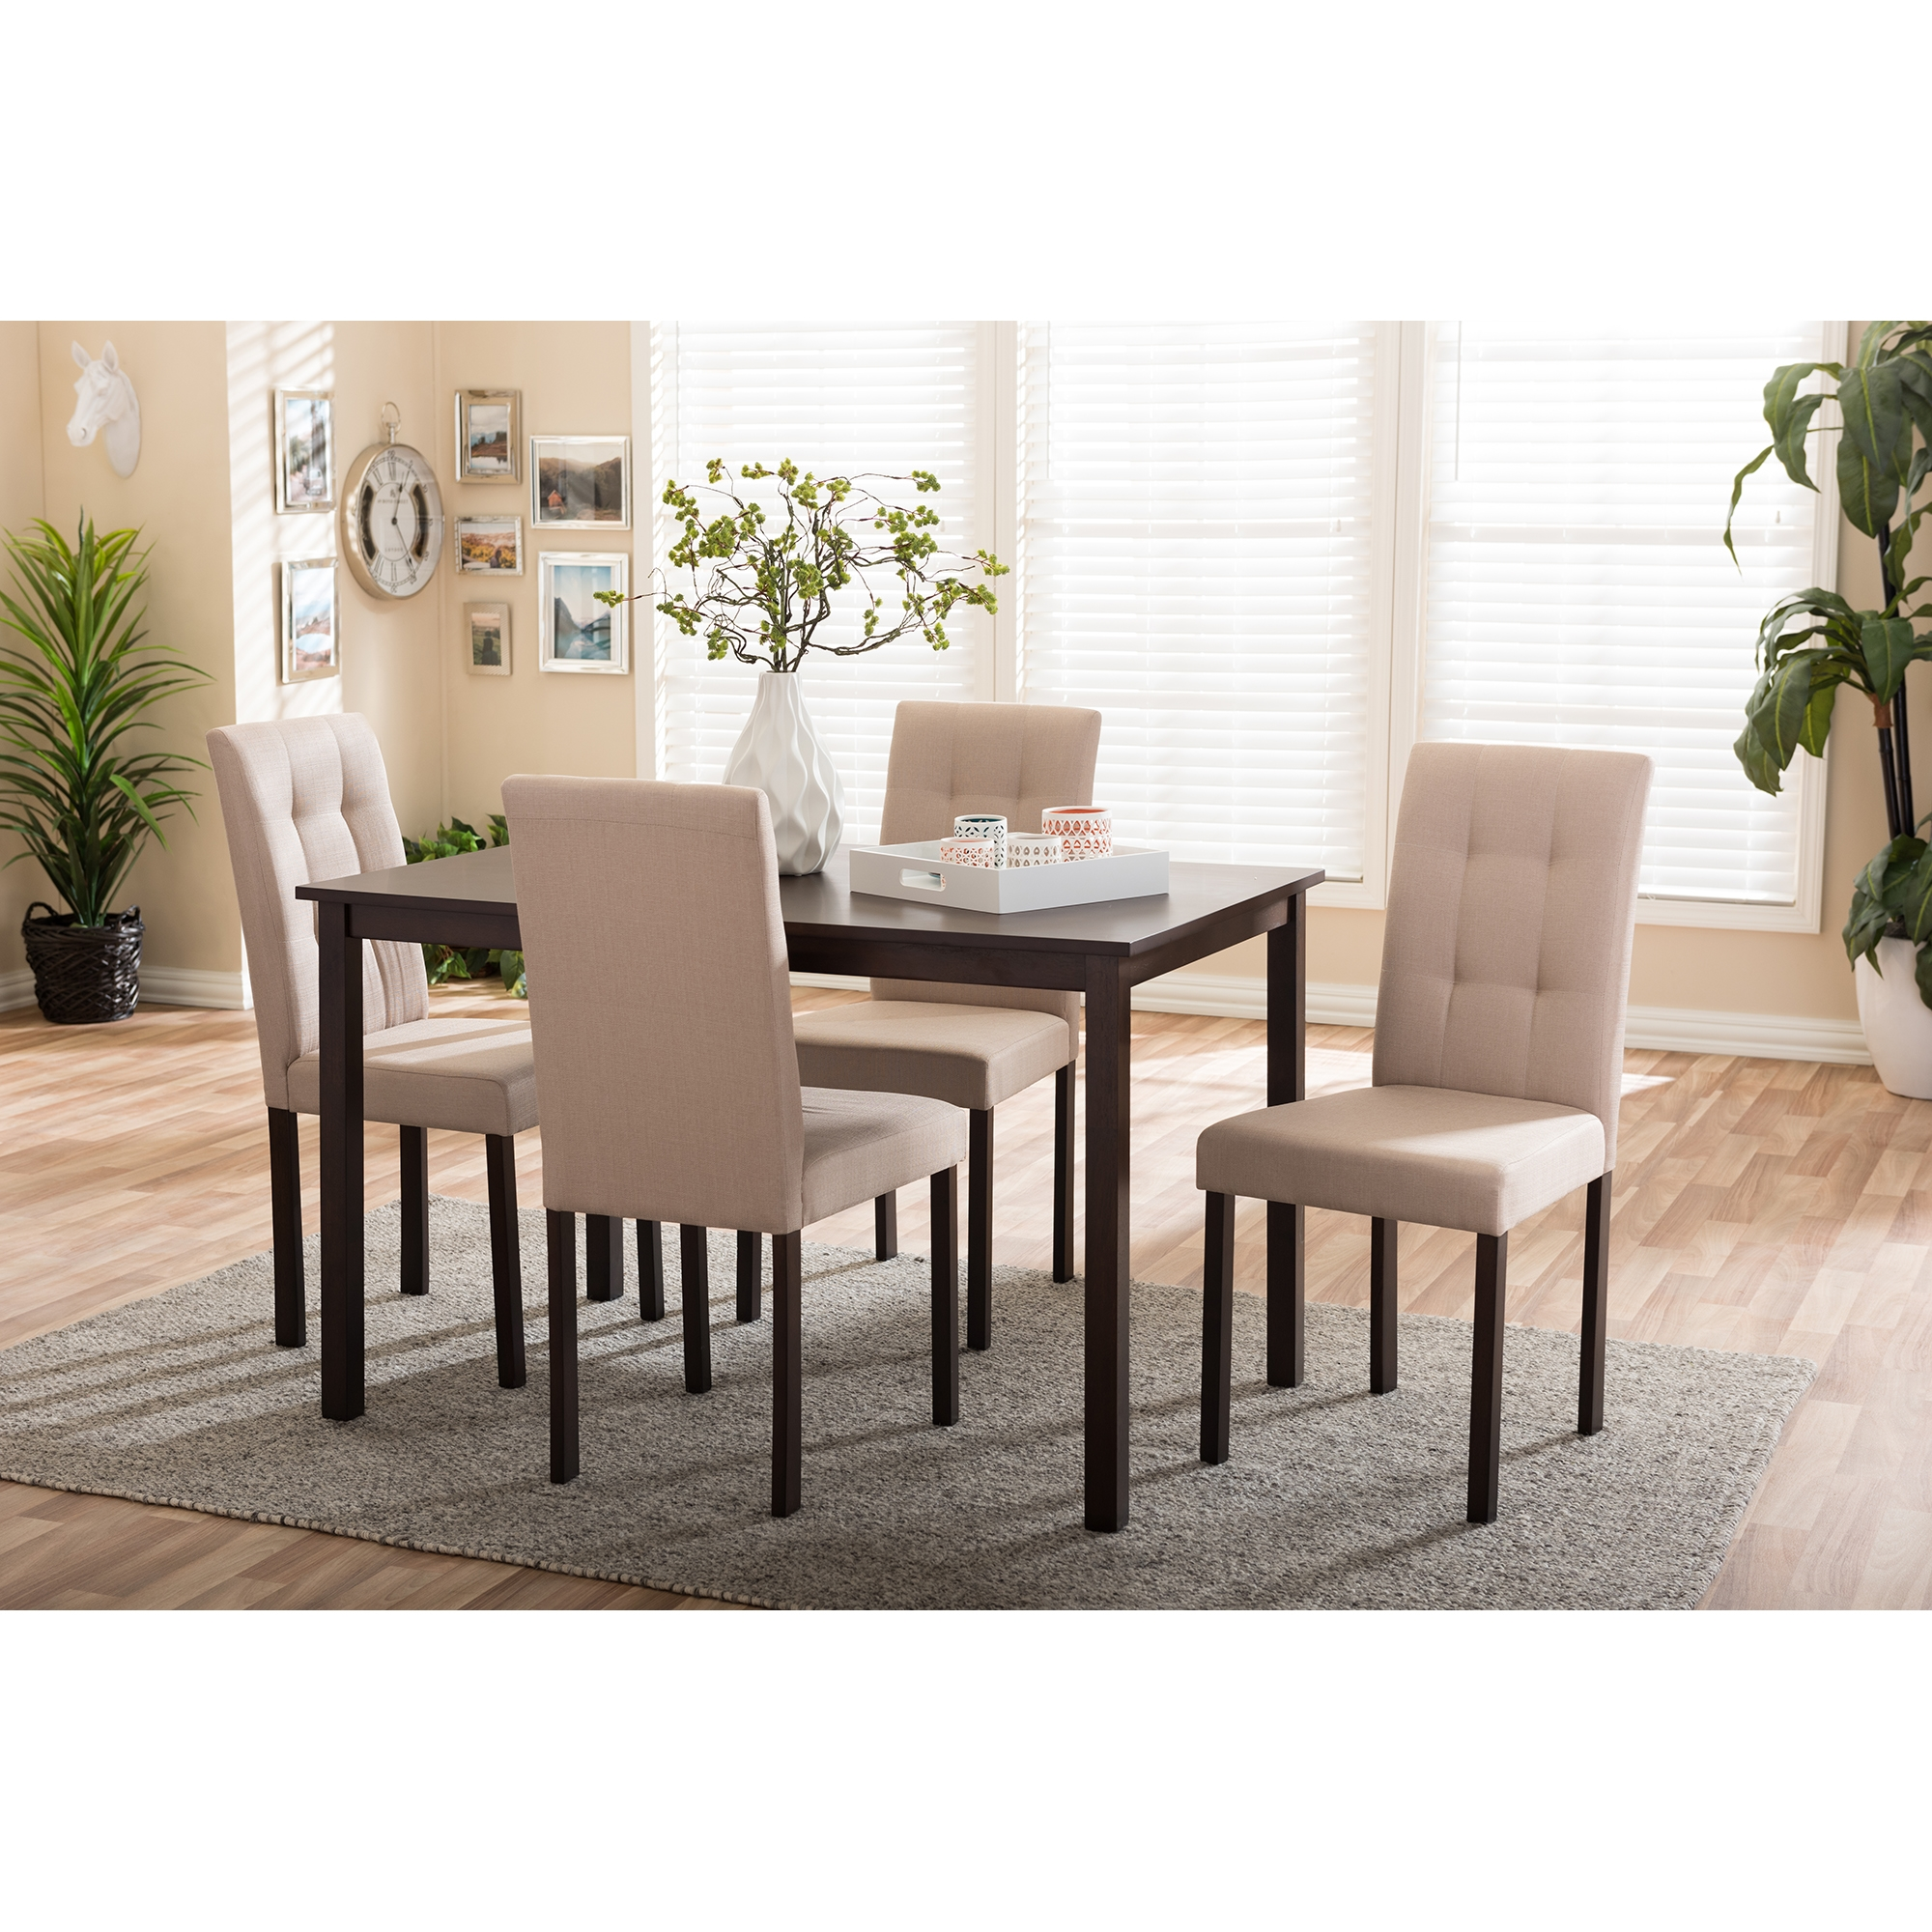 ... Baxton Studio Andrew Modern And Contemporary 5 Piece Beige Fabric  Upholstered Grid Tufting Dining